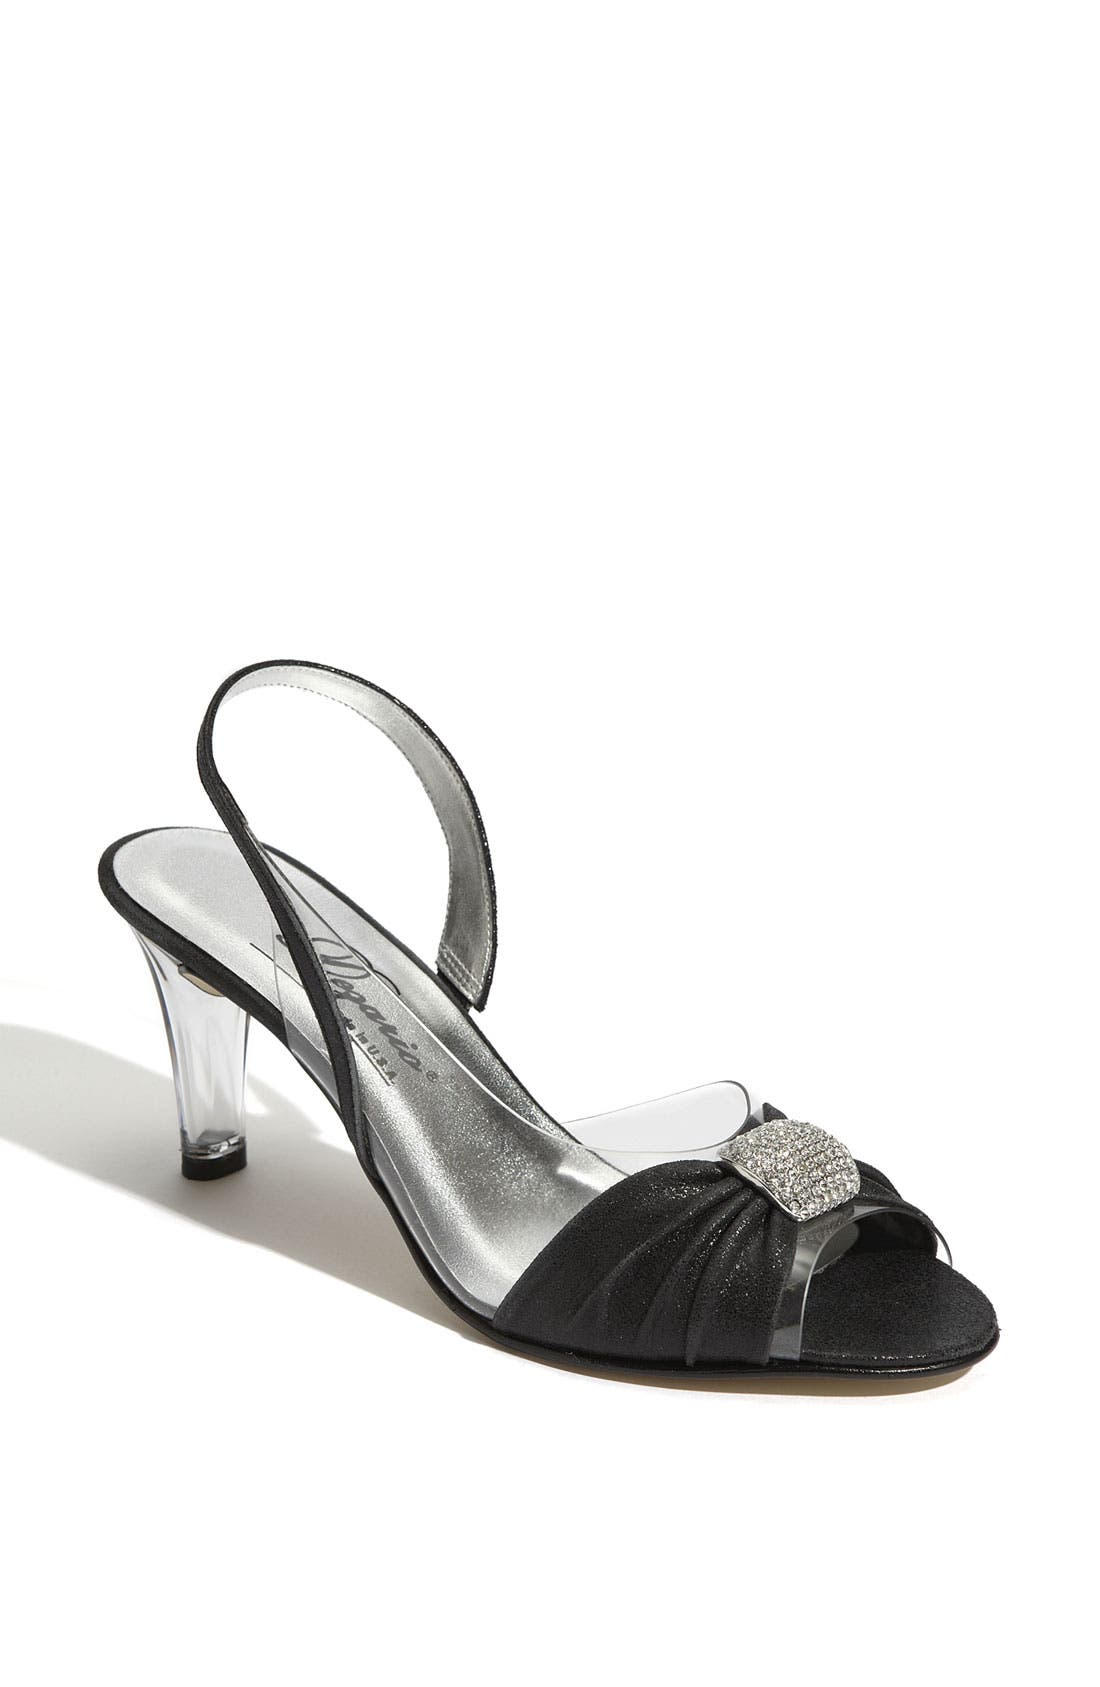 Alternate Image 1 Selected - Dezario 'Turban' Slingback Sandal